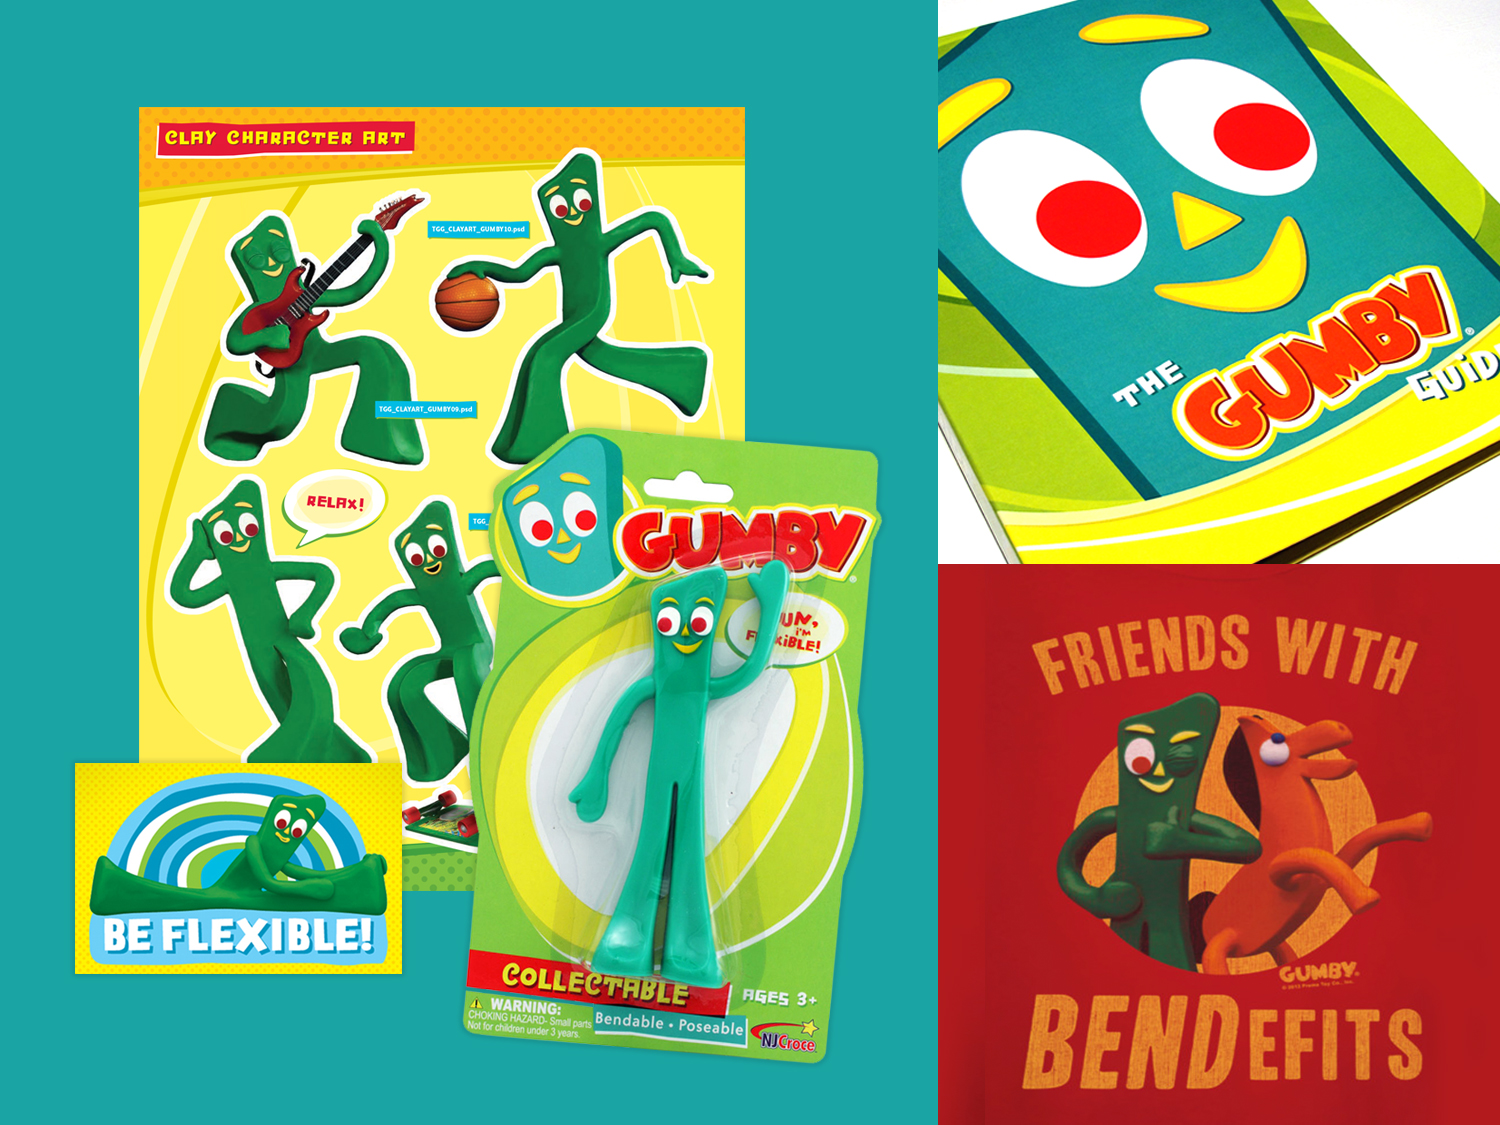 Gumby-style-guide_1500x1125.jpg